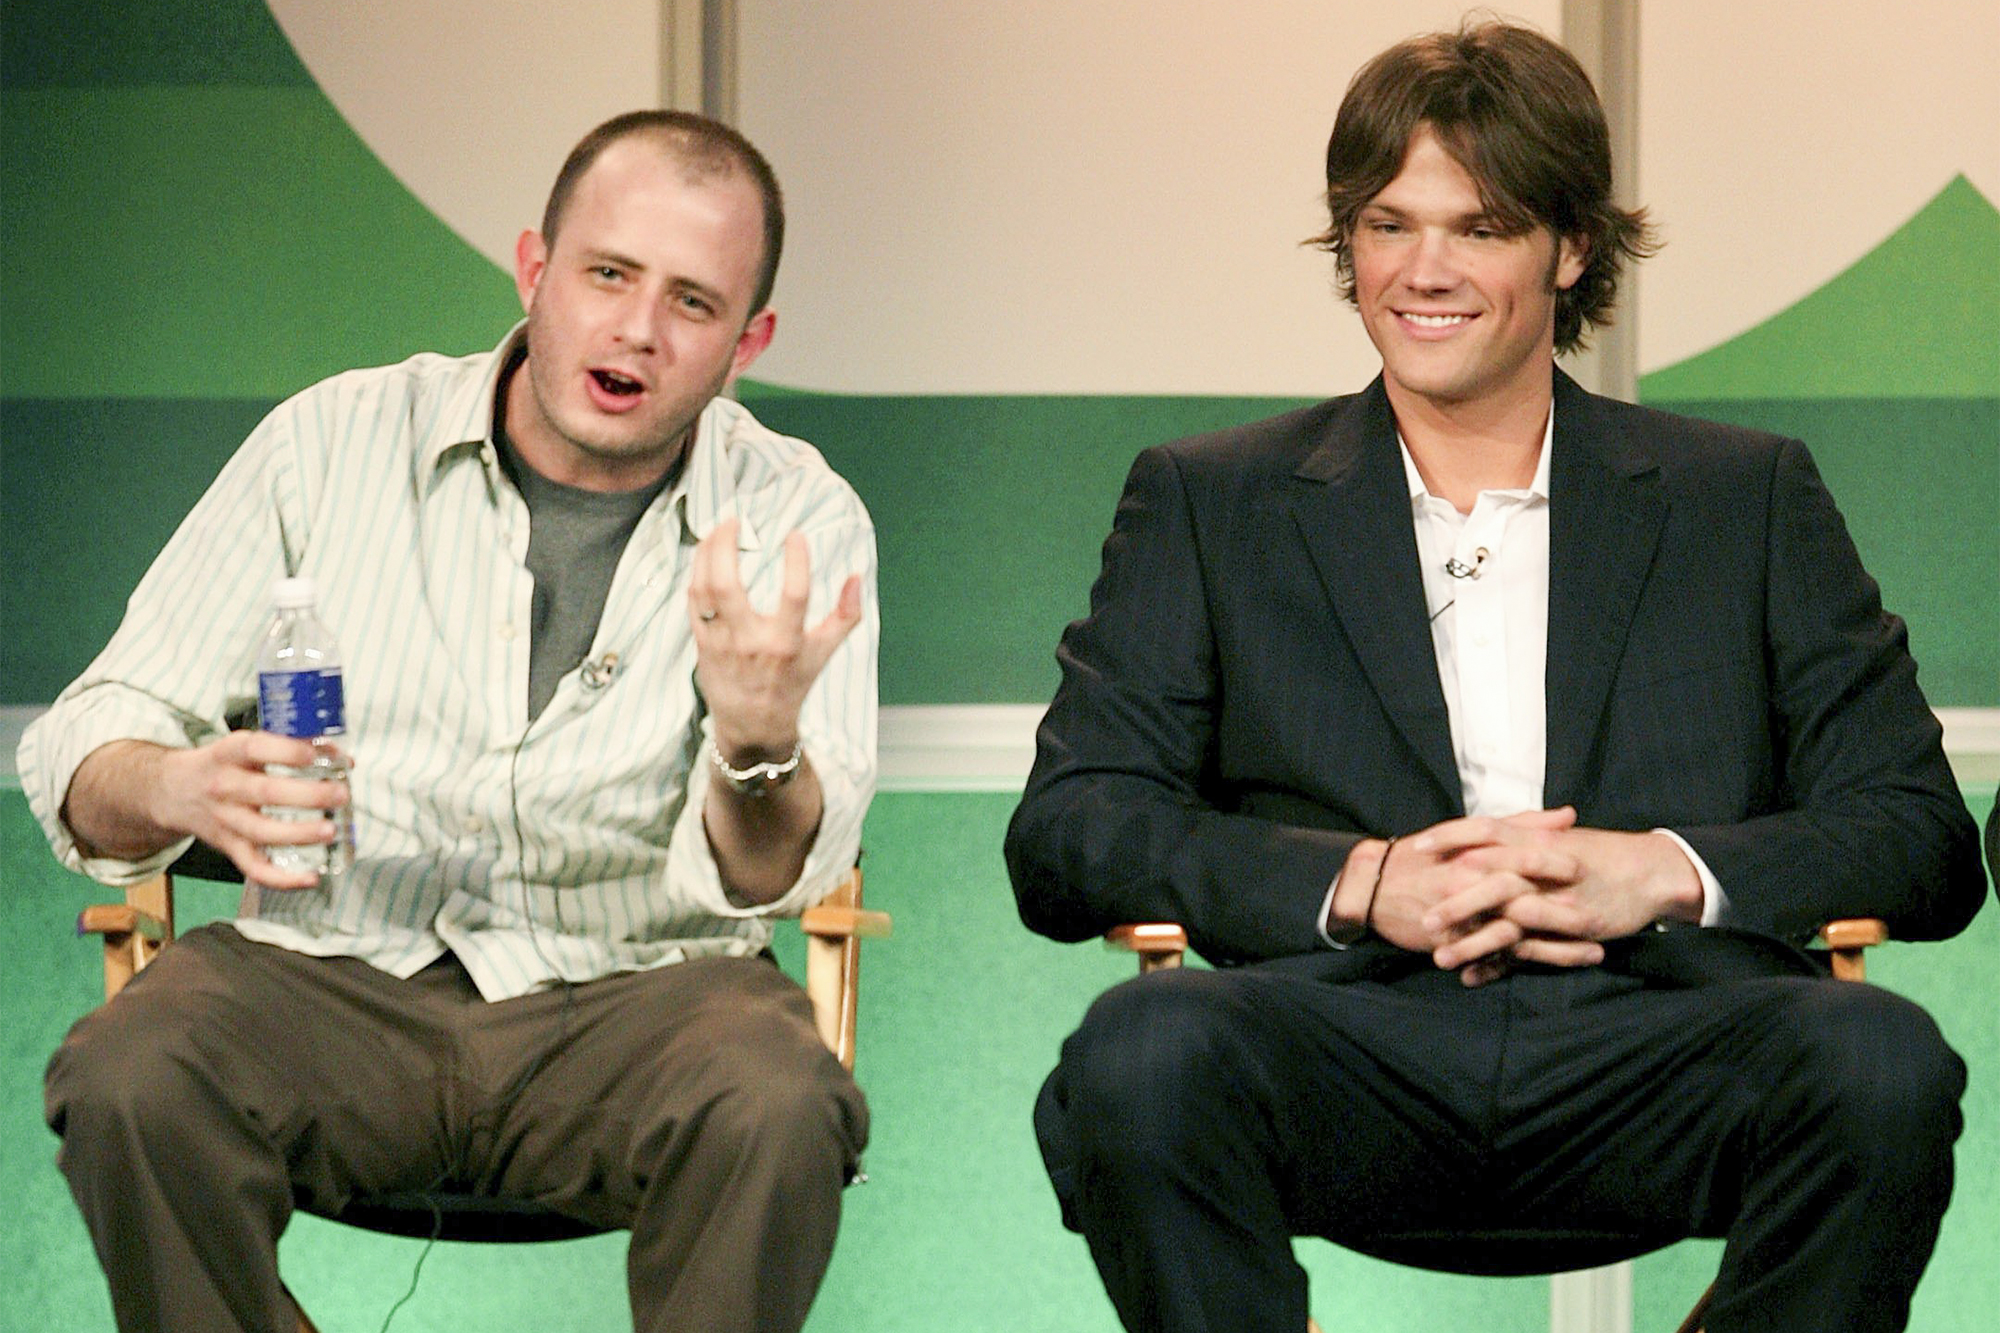 Eric Kripke and Jared Padalecki